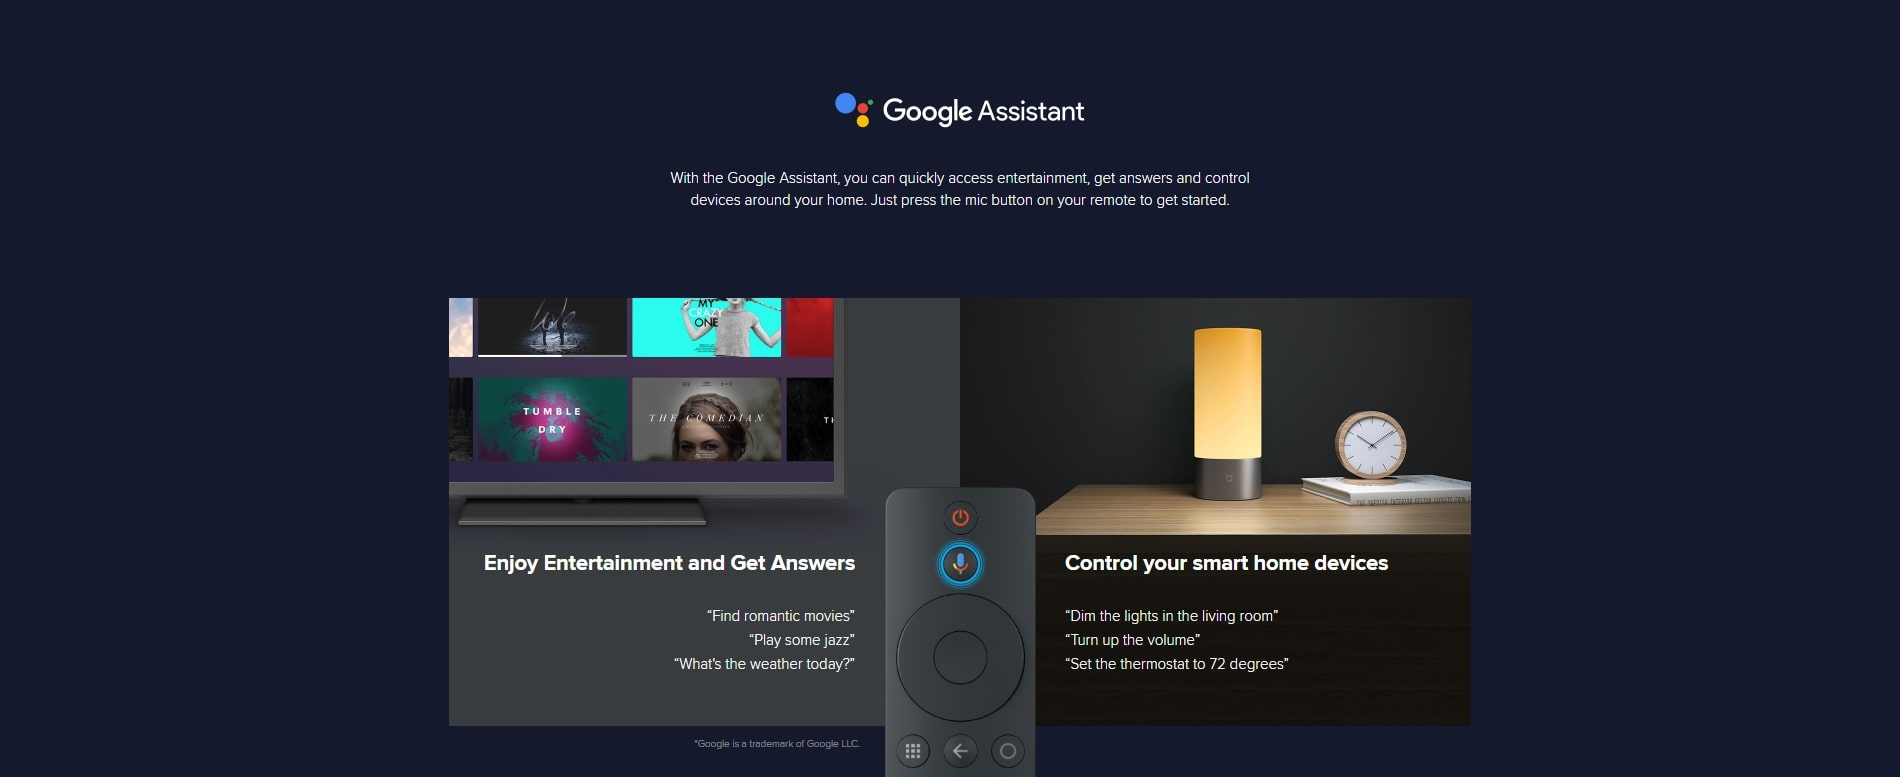 With Google Assistant and Voice control you can easily take control of you Mi Box S